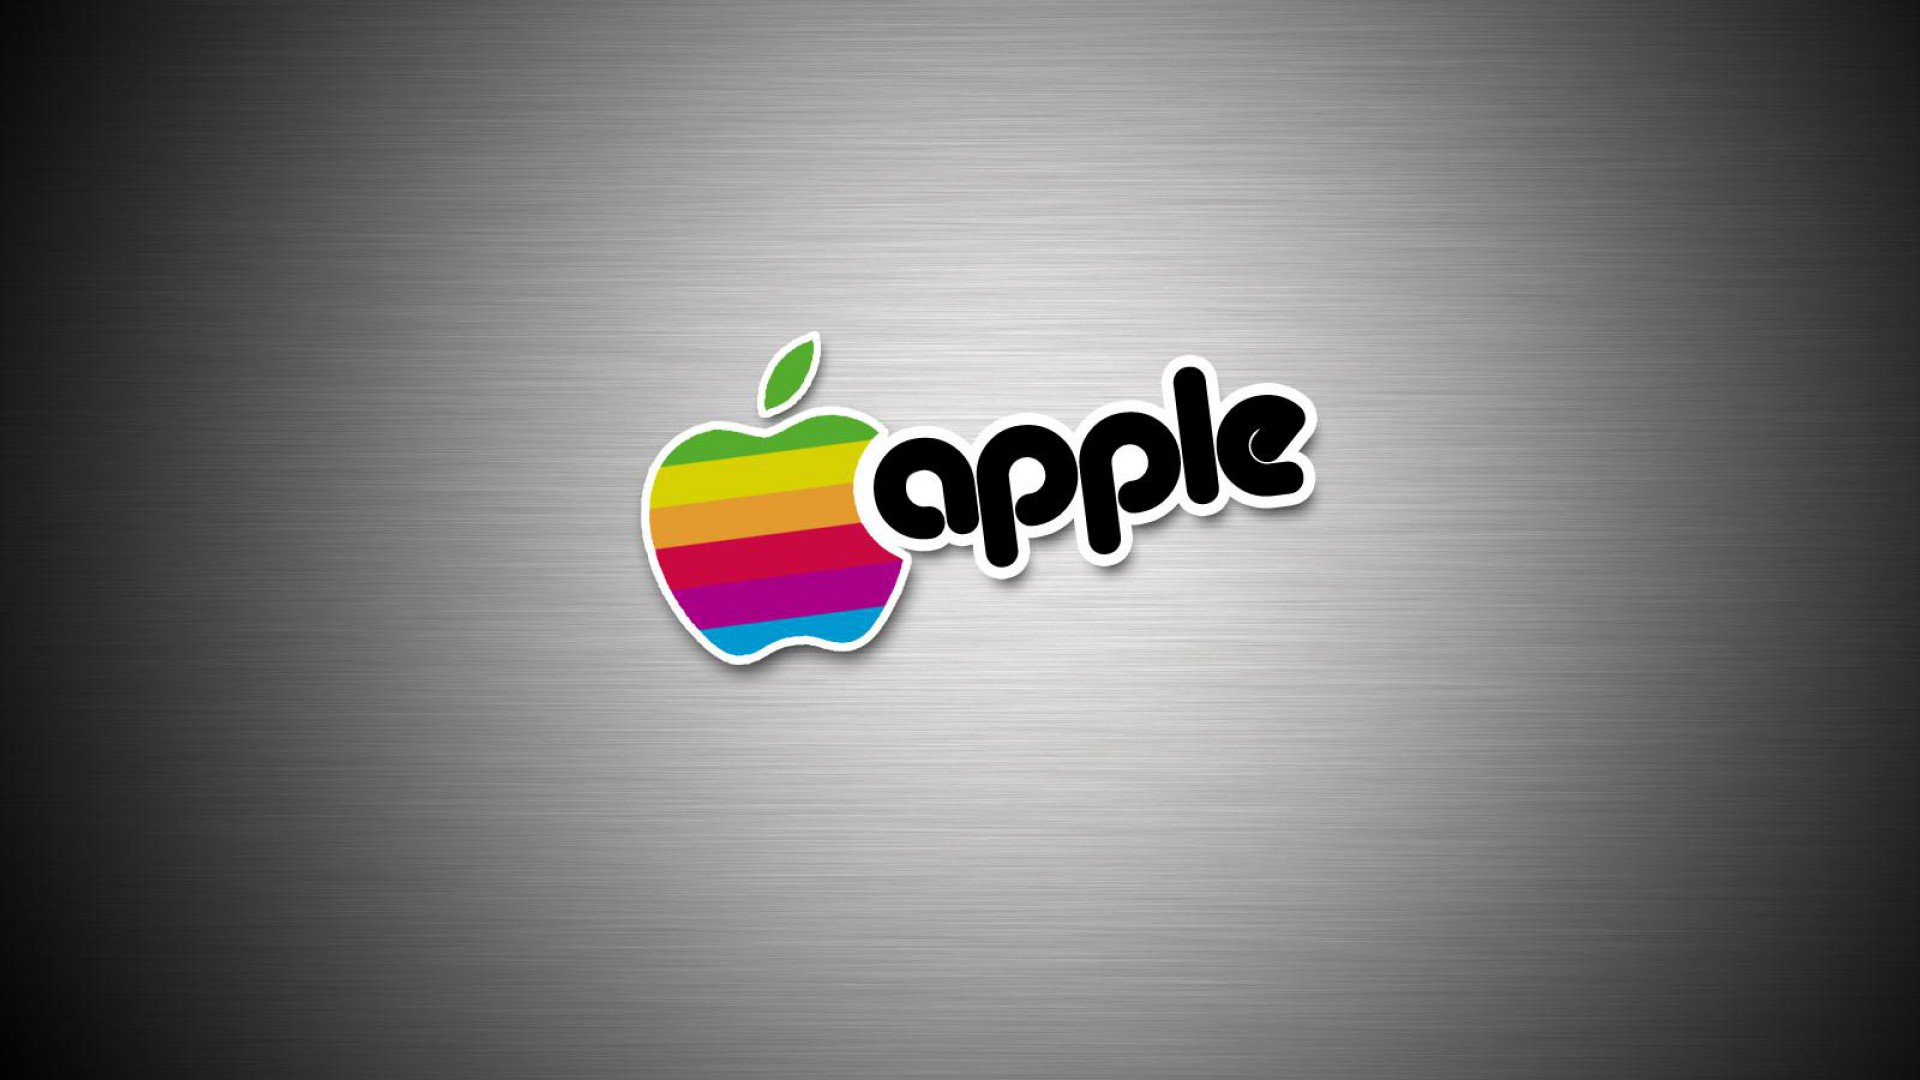 Apple Logo Wallpapers HD rainbow text